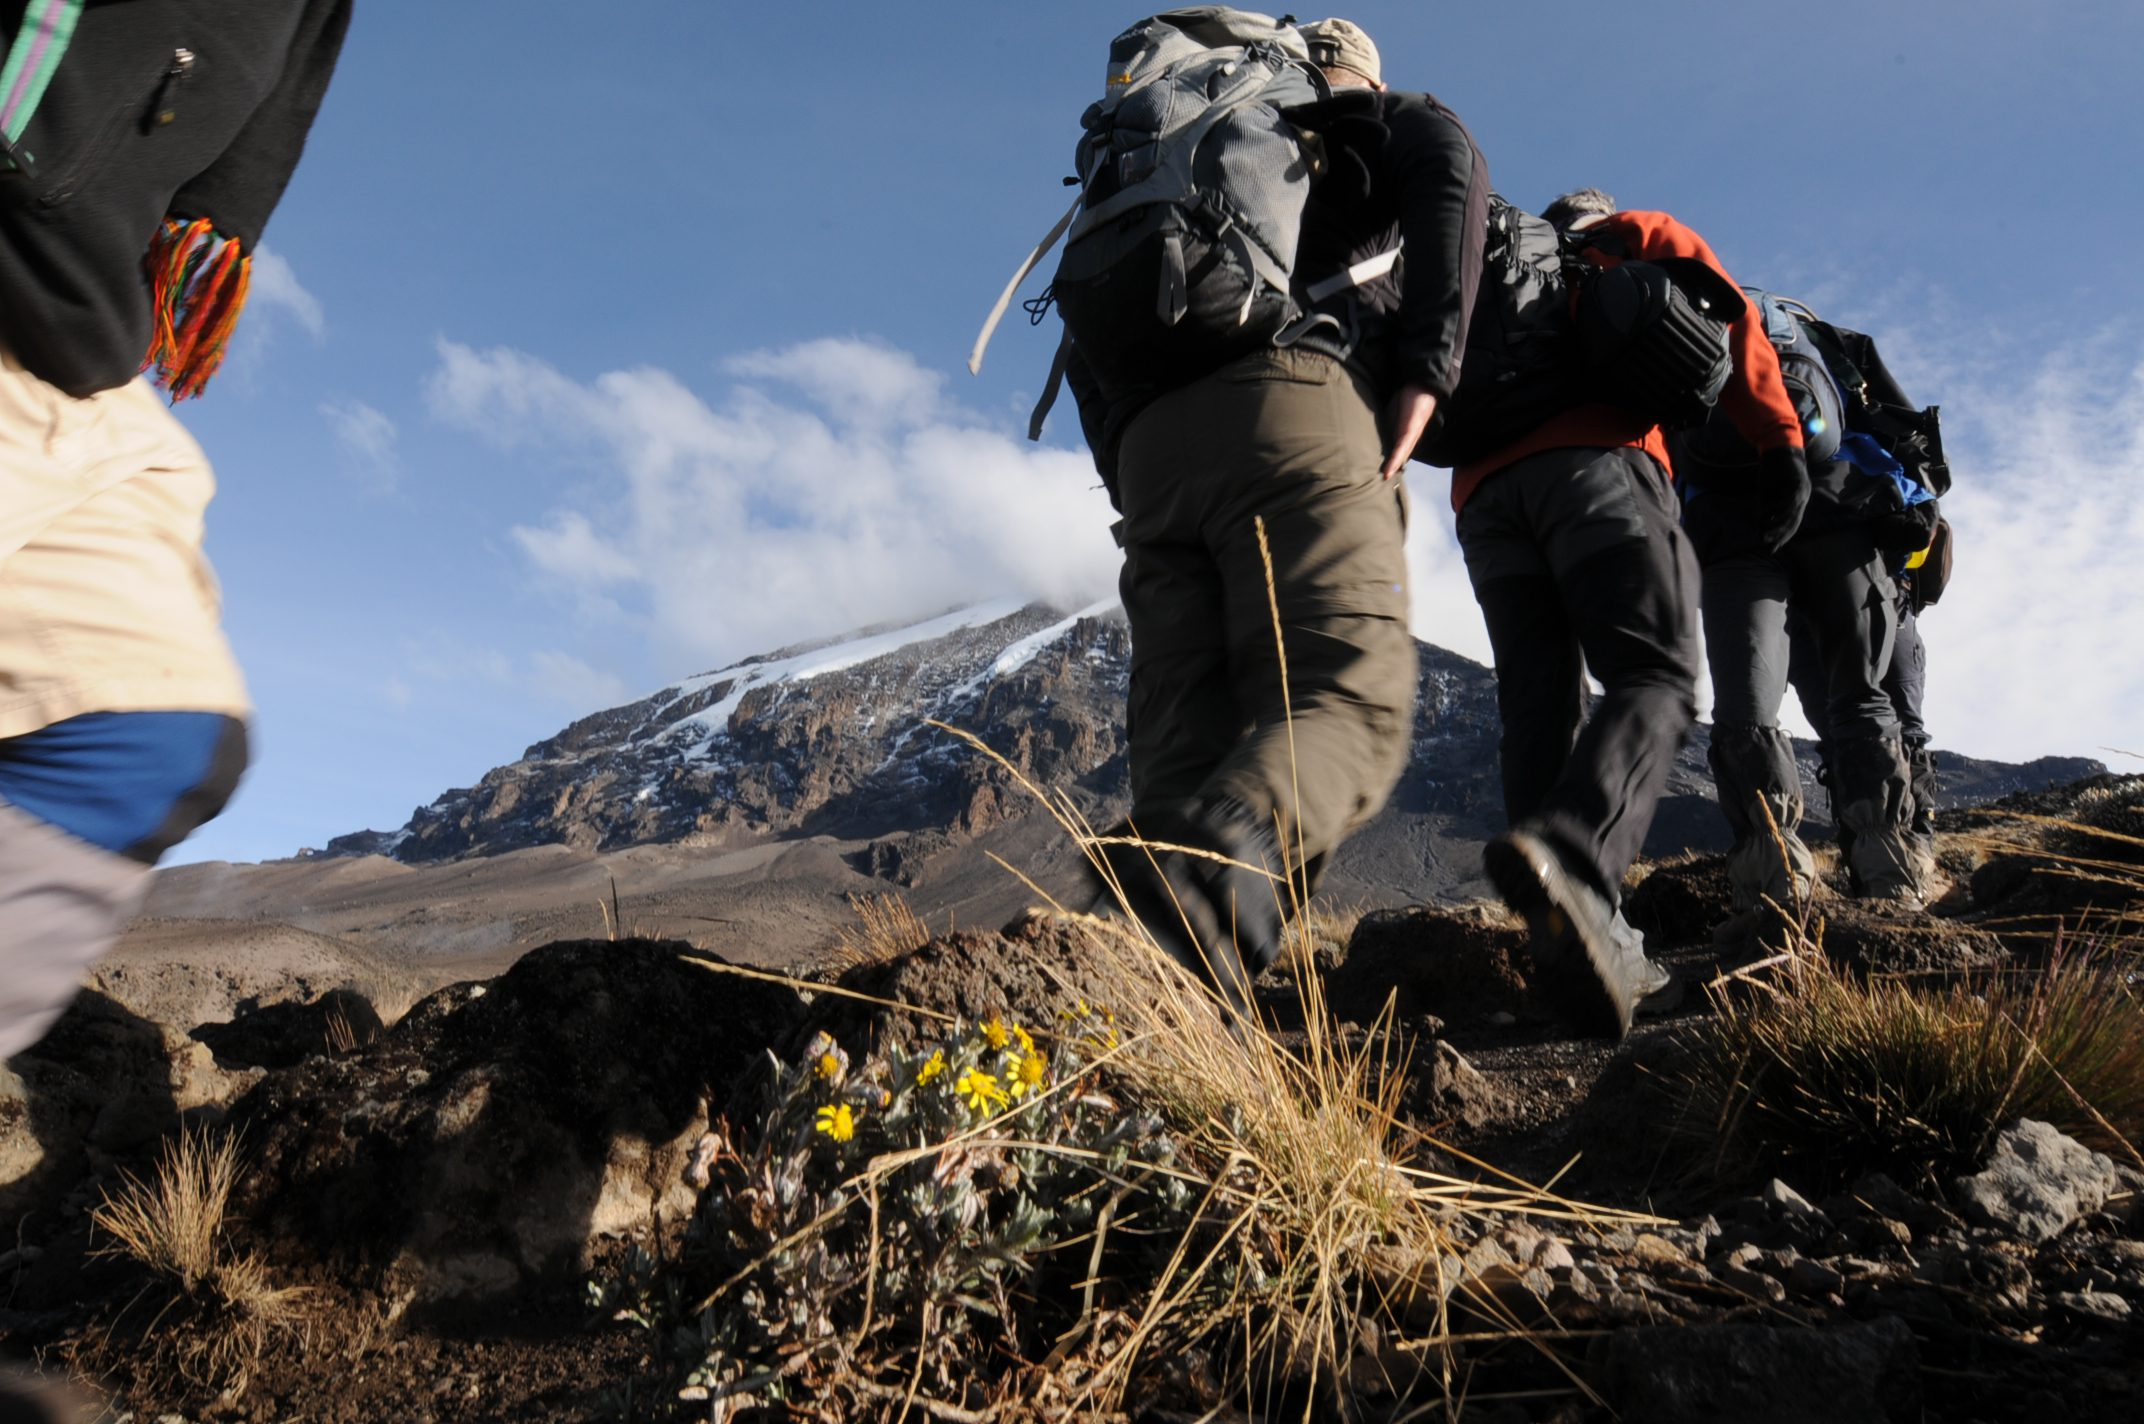 Hikers Climbing Mt Kilimanjaro with the summit in background